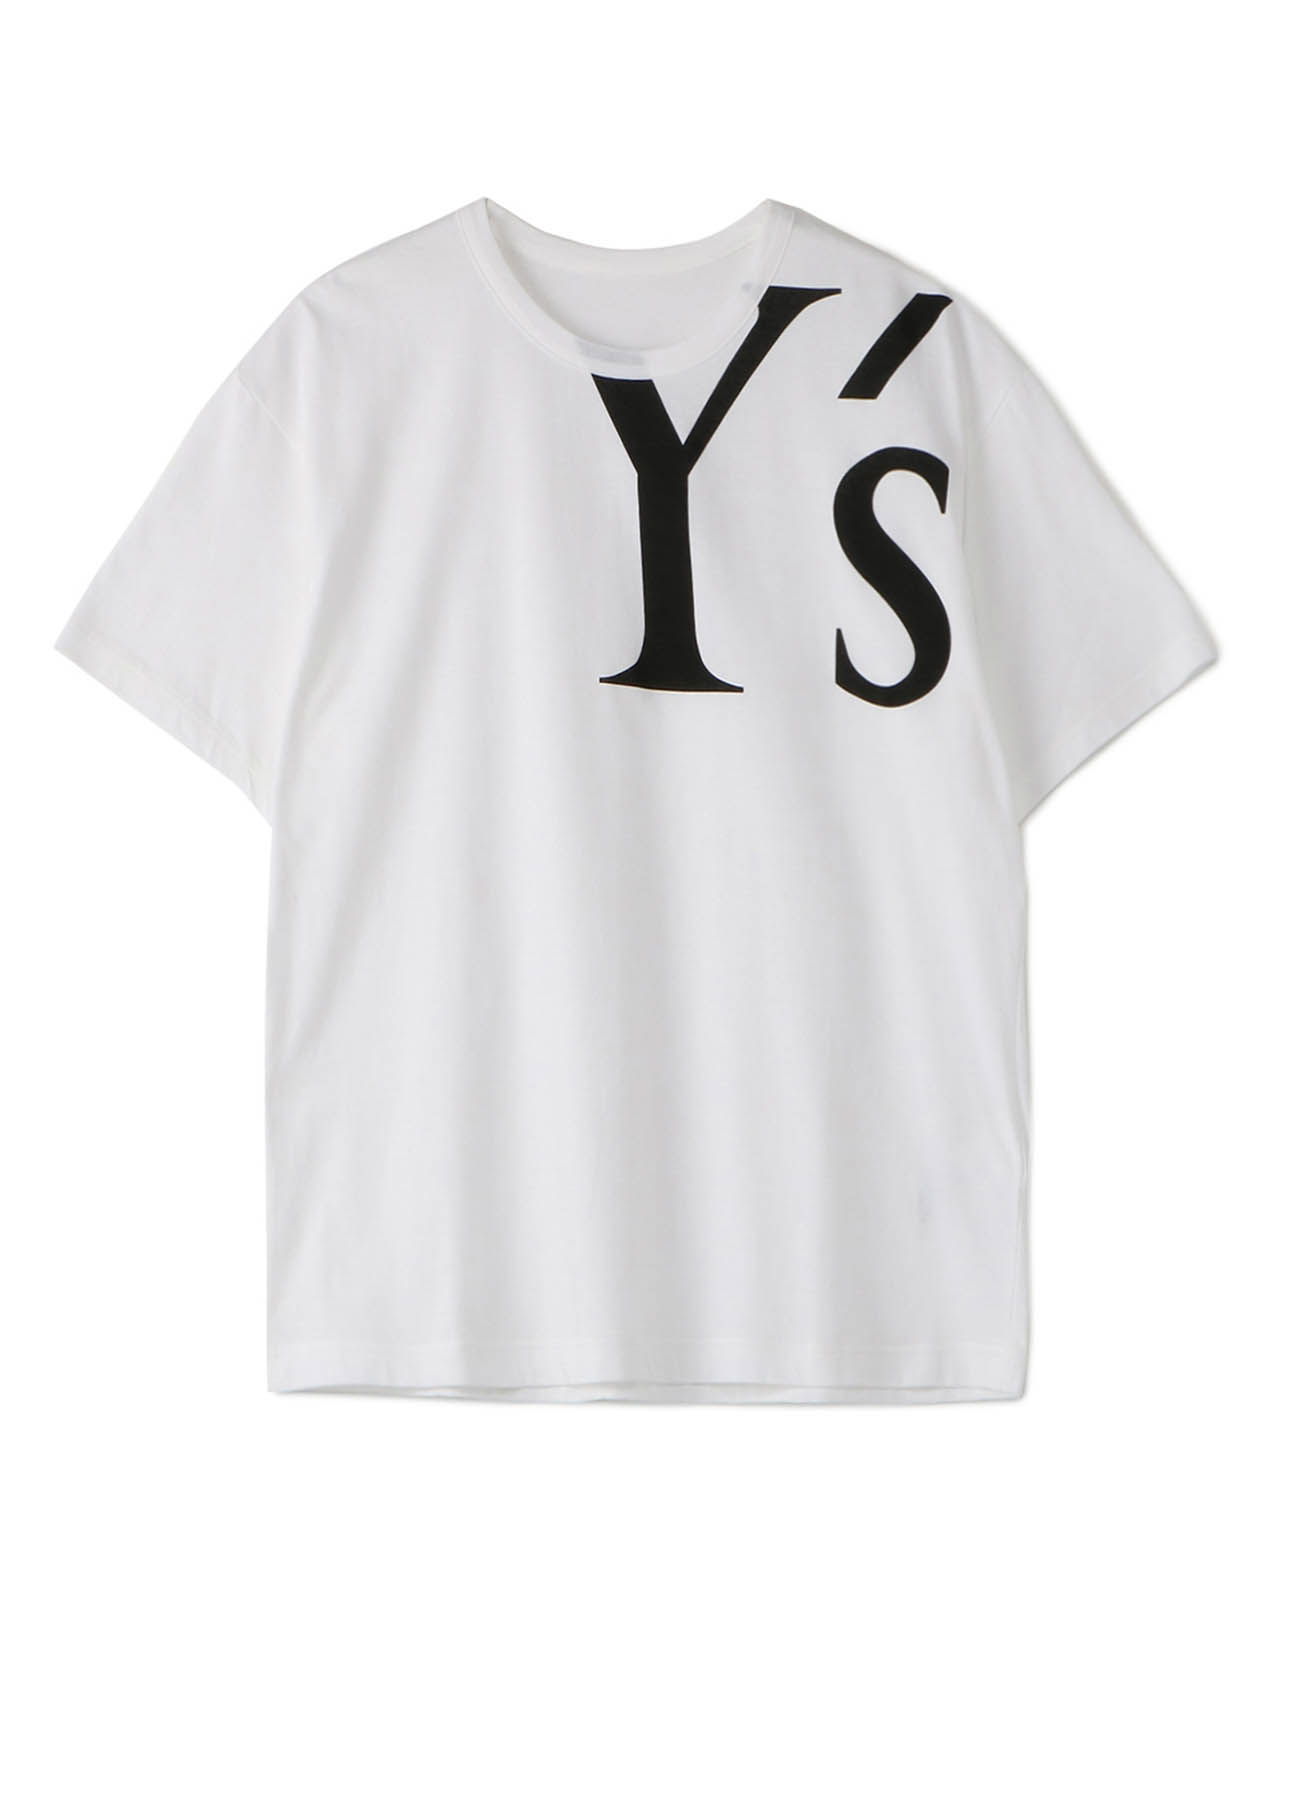 30/- PS Y's LOGO PIGMENT PRINT 2WAY DOLMAN SLEEVE OP